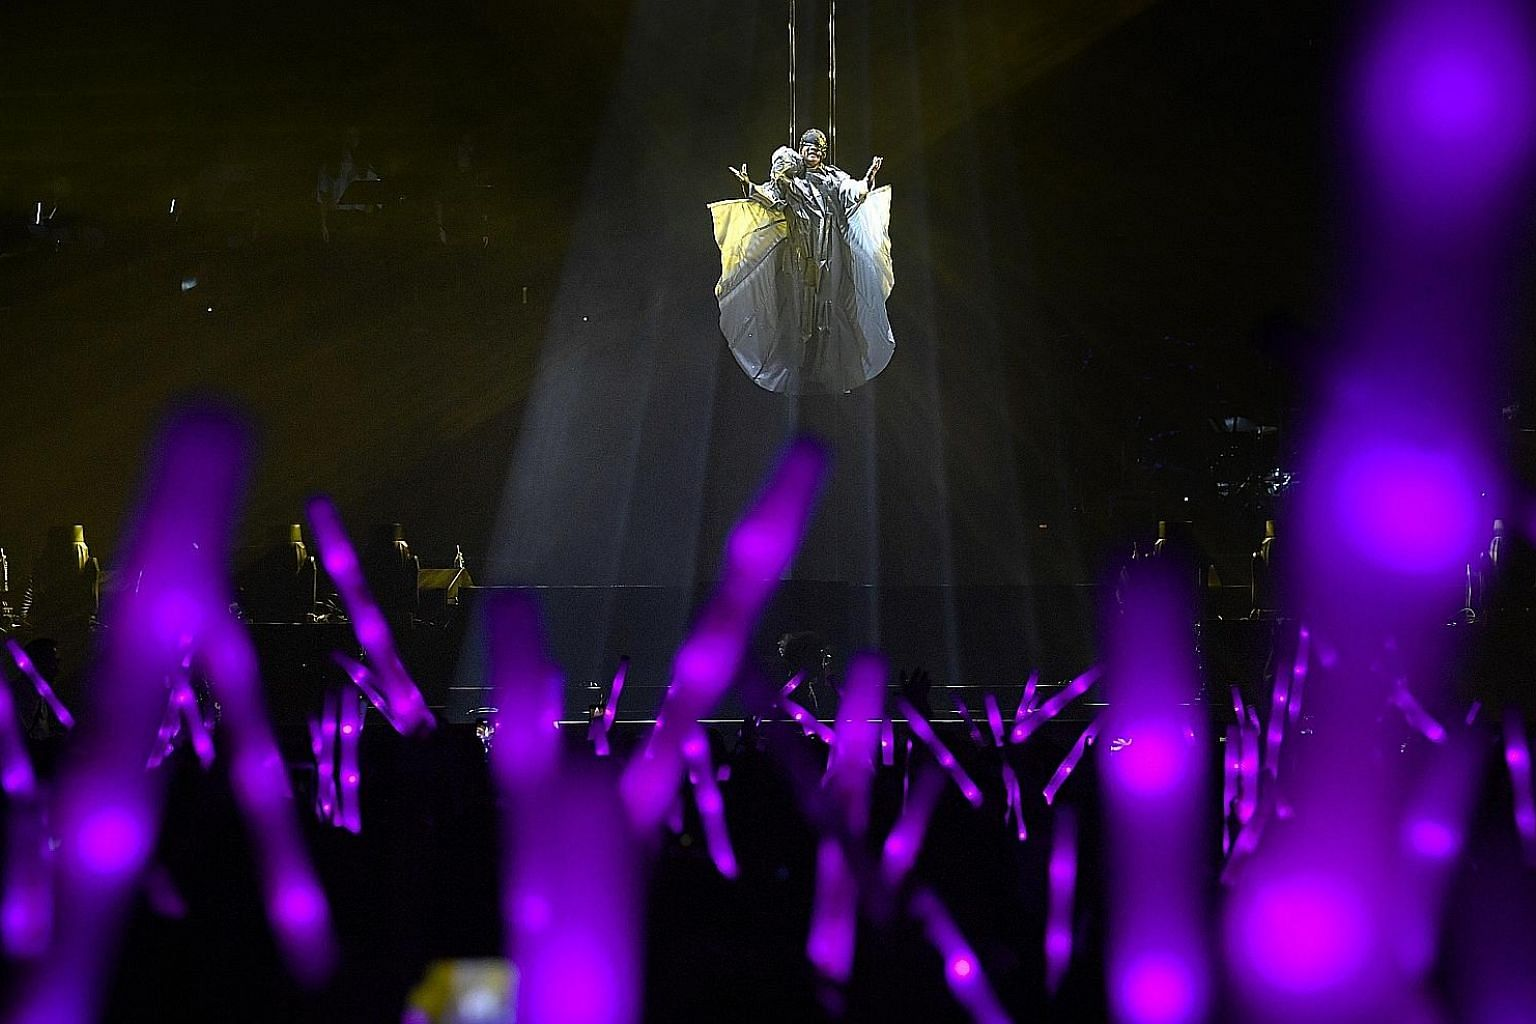 Home-grown Mandopop star JJ Lin made a dramatic entrance for his JJ Lin Sanctuary World Tour at the Singapore Indoor Stadium last night. 	Before an audience of 8,000, he appeared suspended in mid-air, cocooned in white and spinning head over heels sl